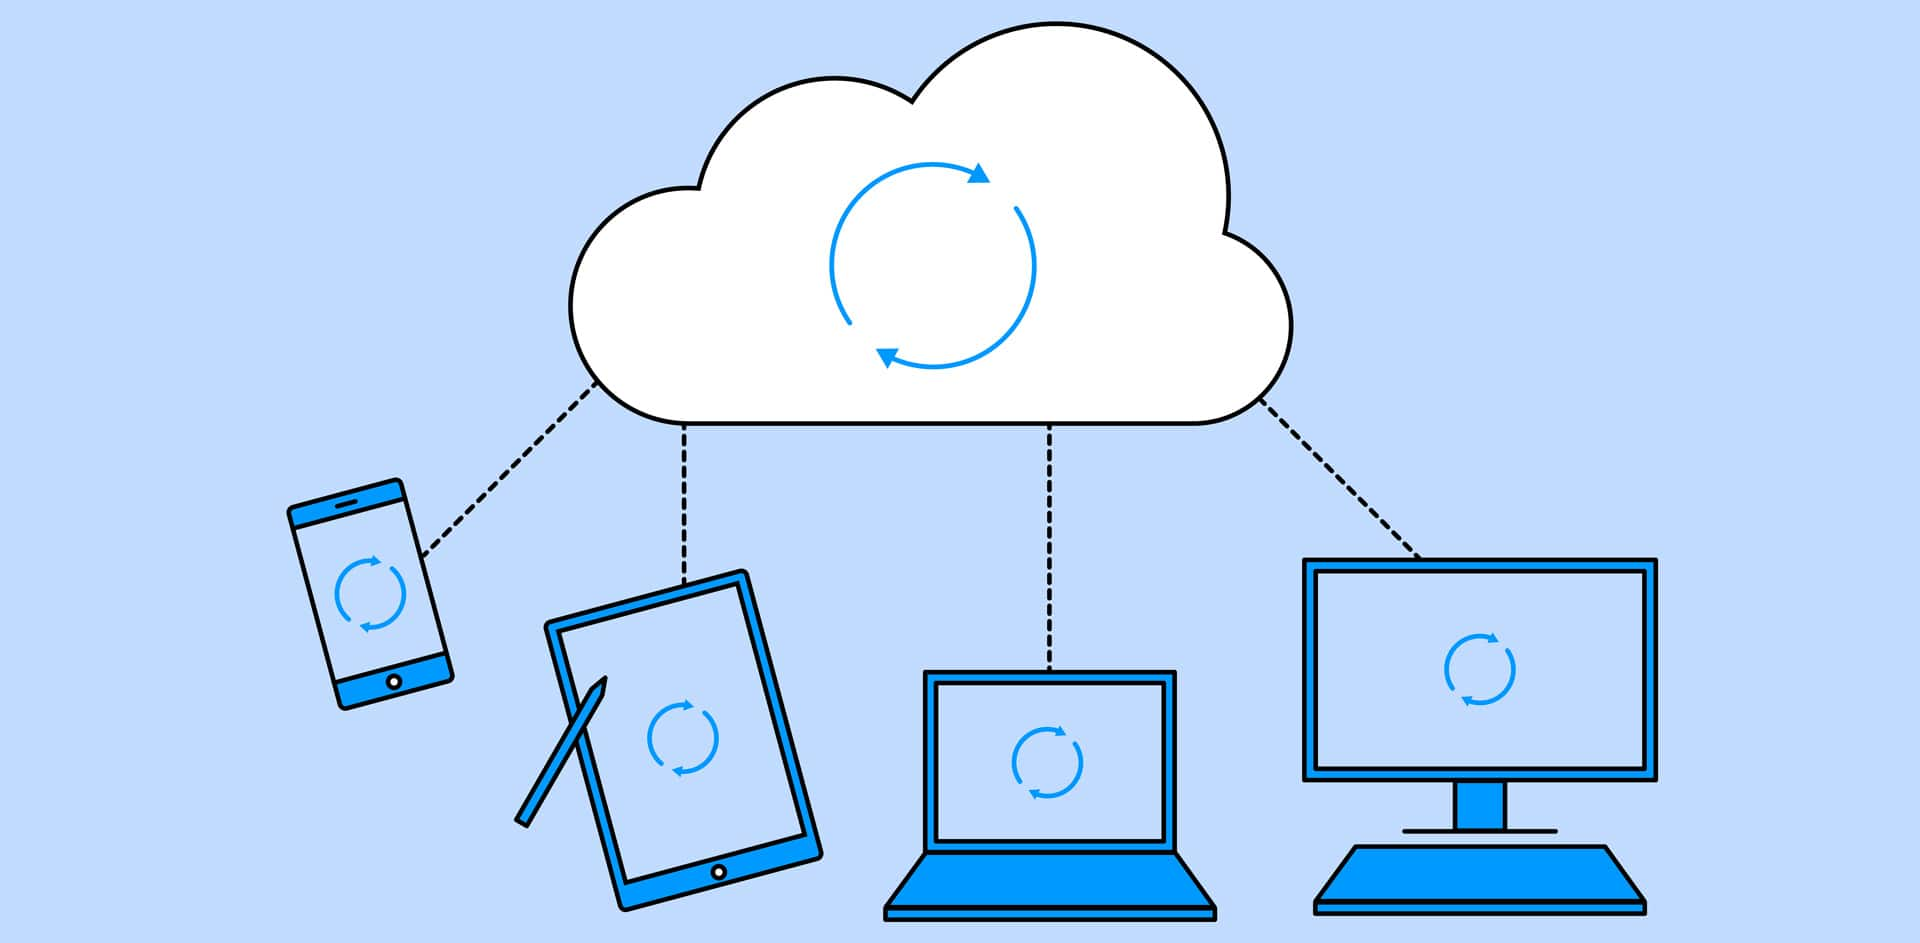 illustration of cloud integration with electronic devices